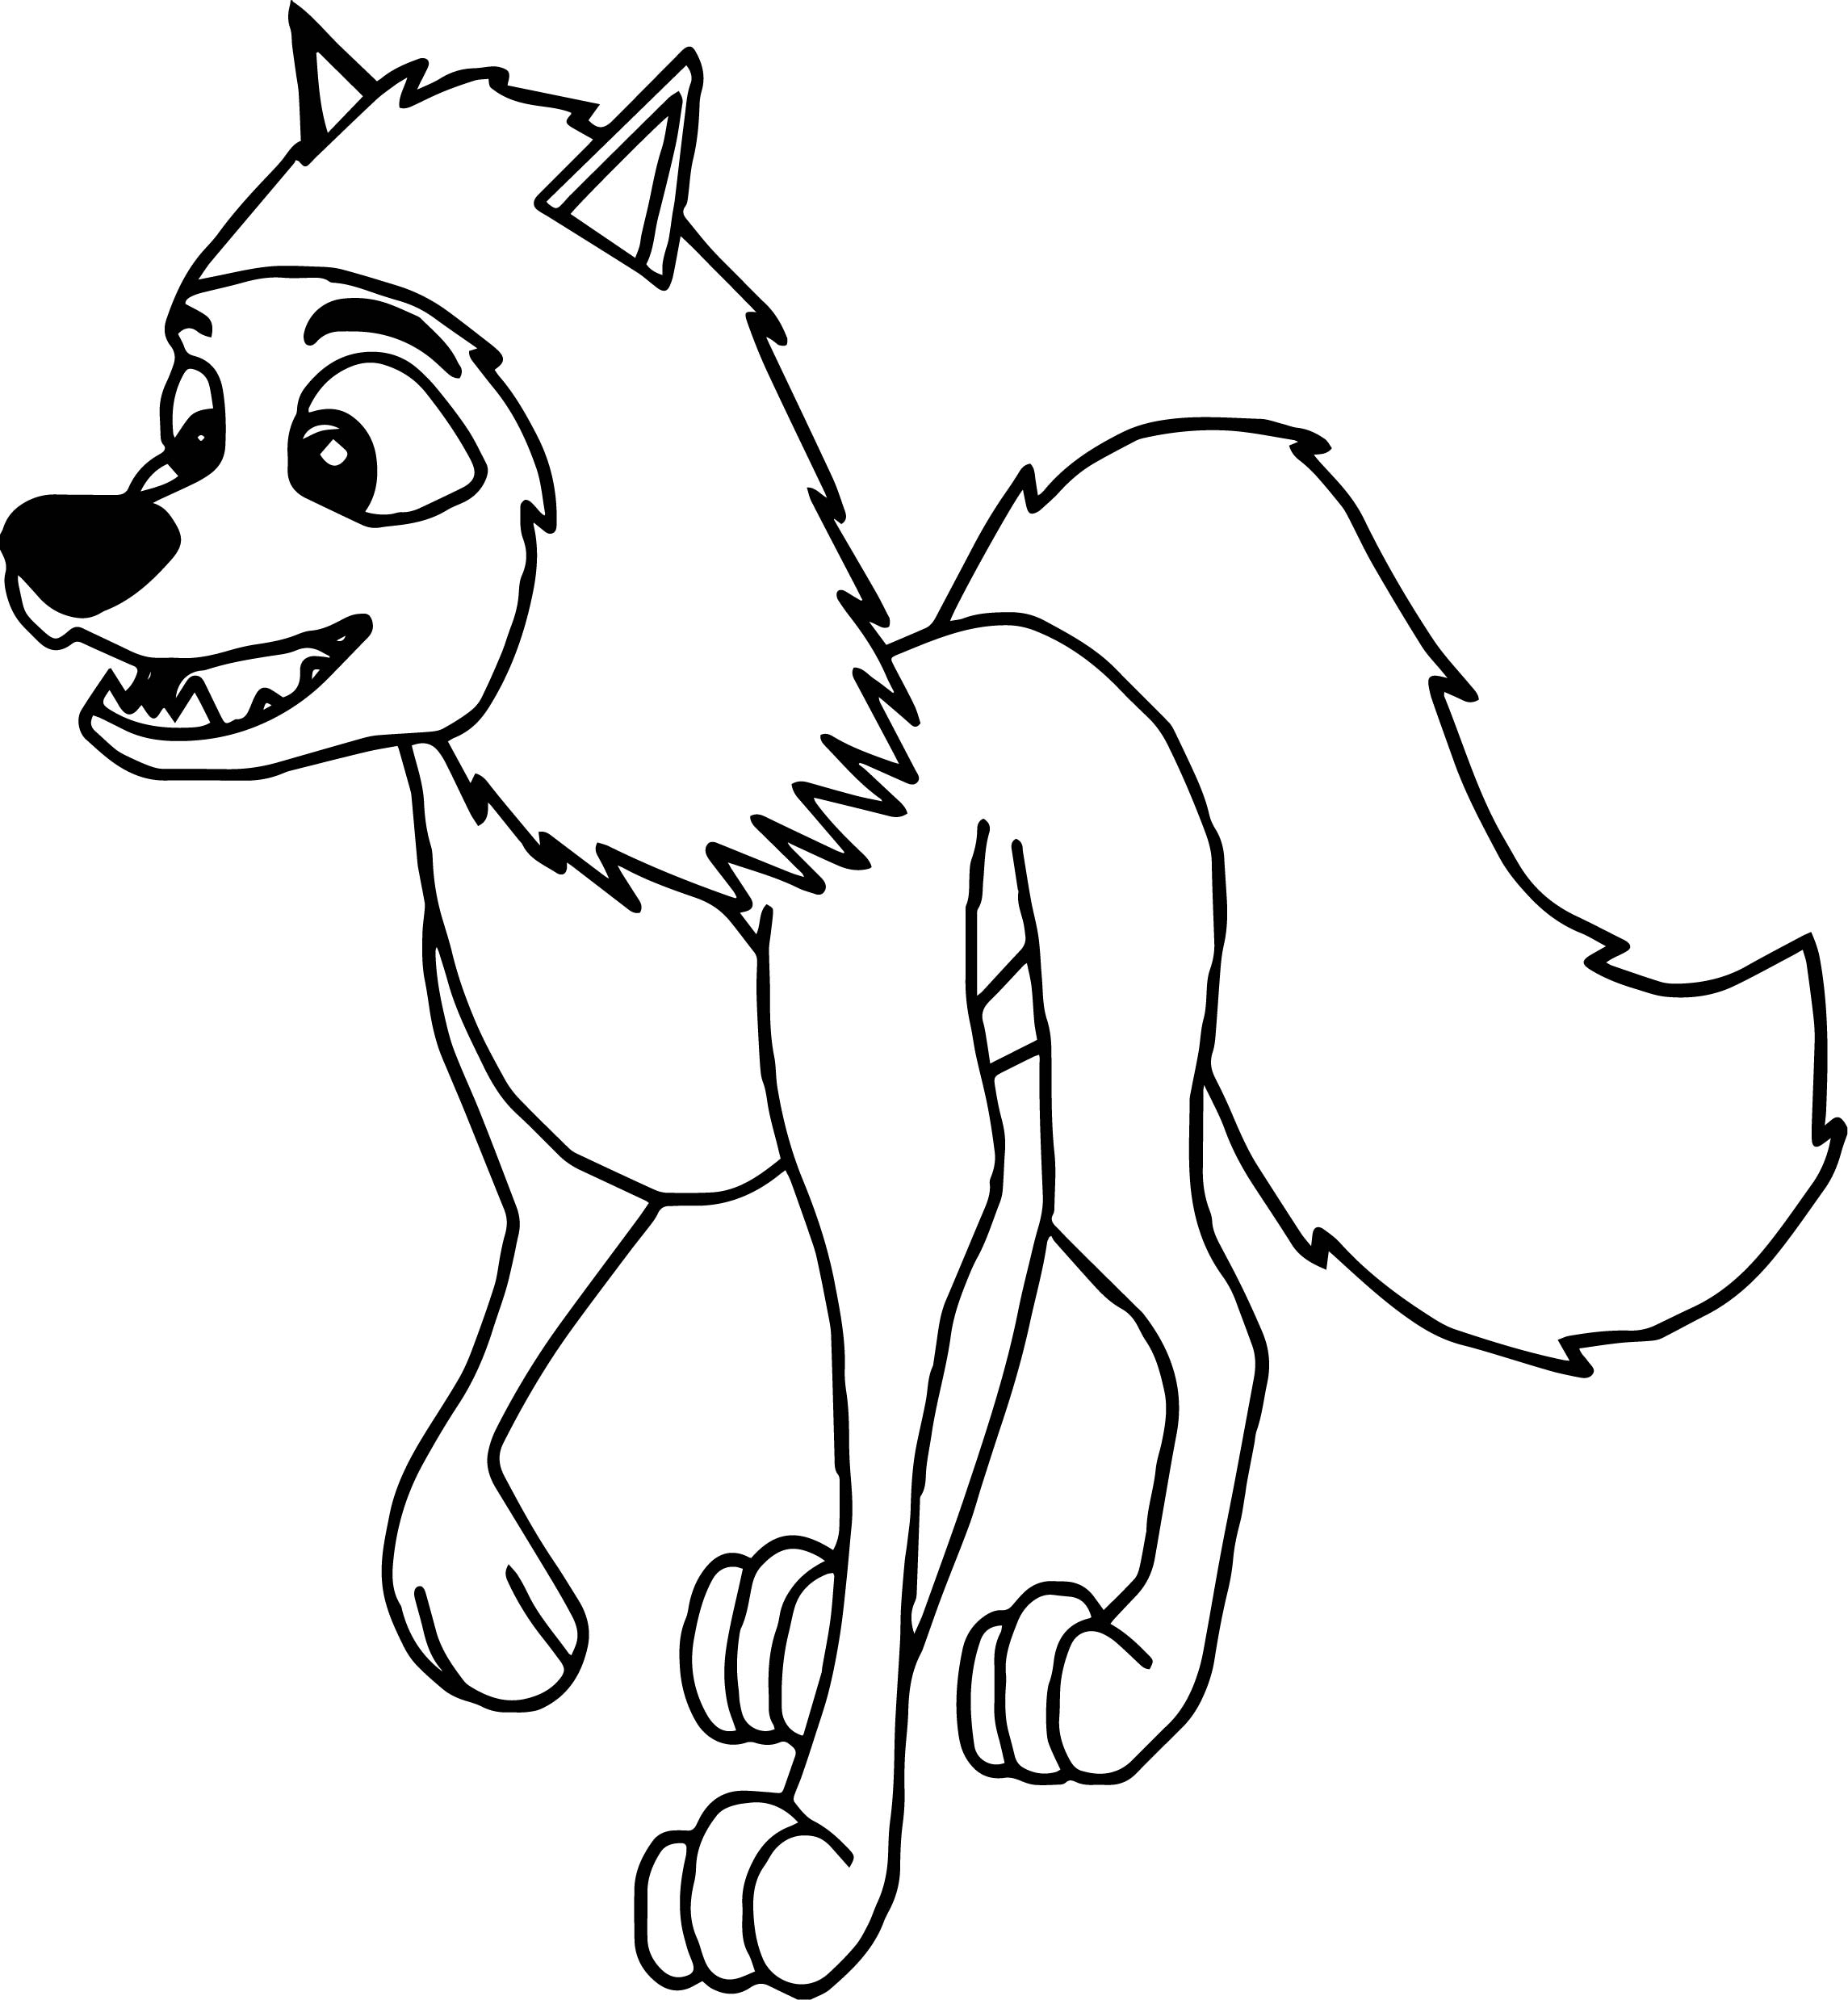 candy from alpha and omega coloring page wecoloringpage